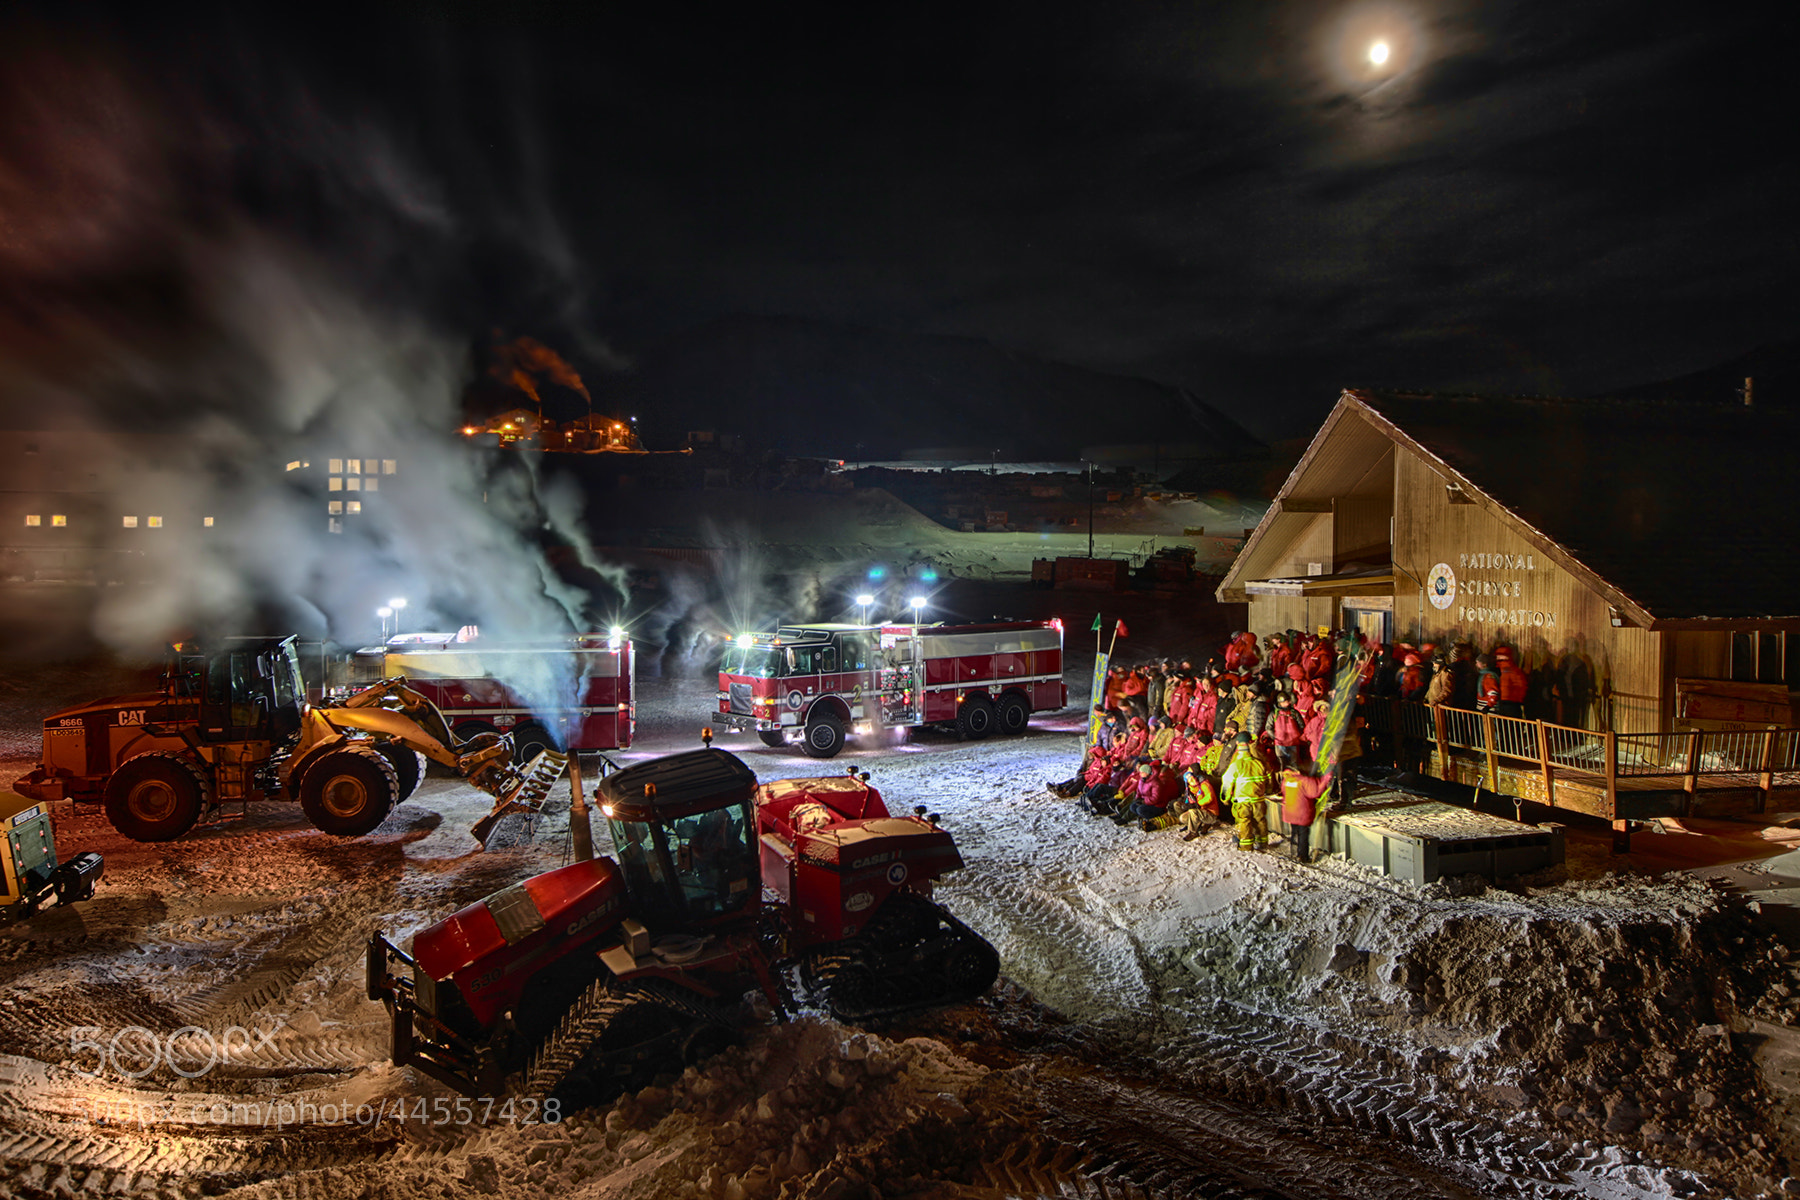 Photograph Winter 2013 Crew Photo by Deven Stross on 500px